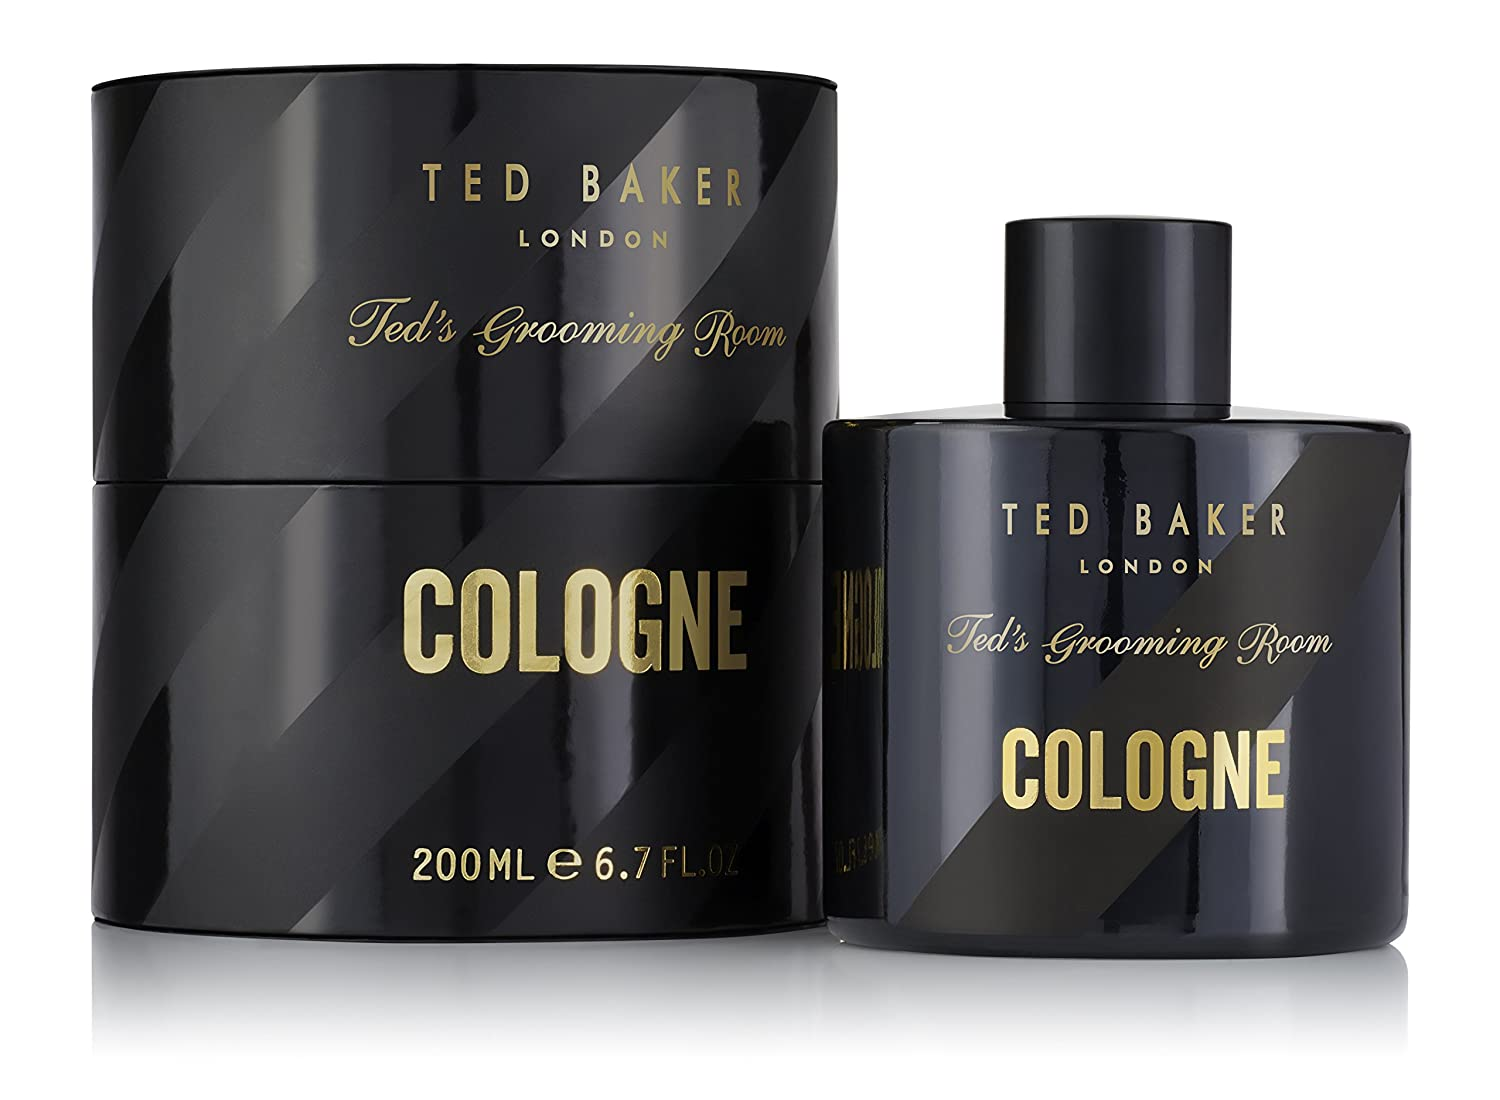 112b2d1bd Ted Baker Ted s Grooming Room Cologne  Amazon.co.uk  Luxury Beauty